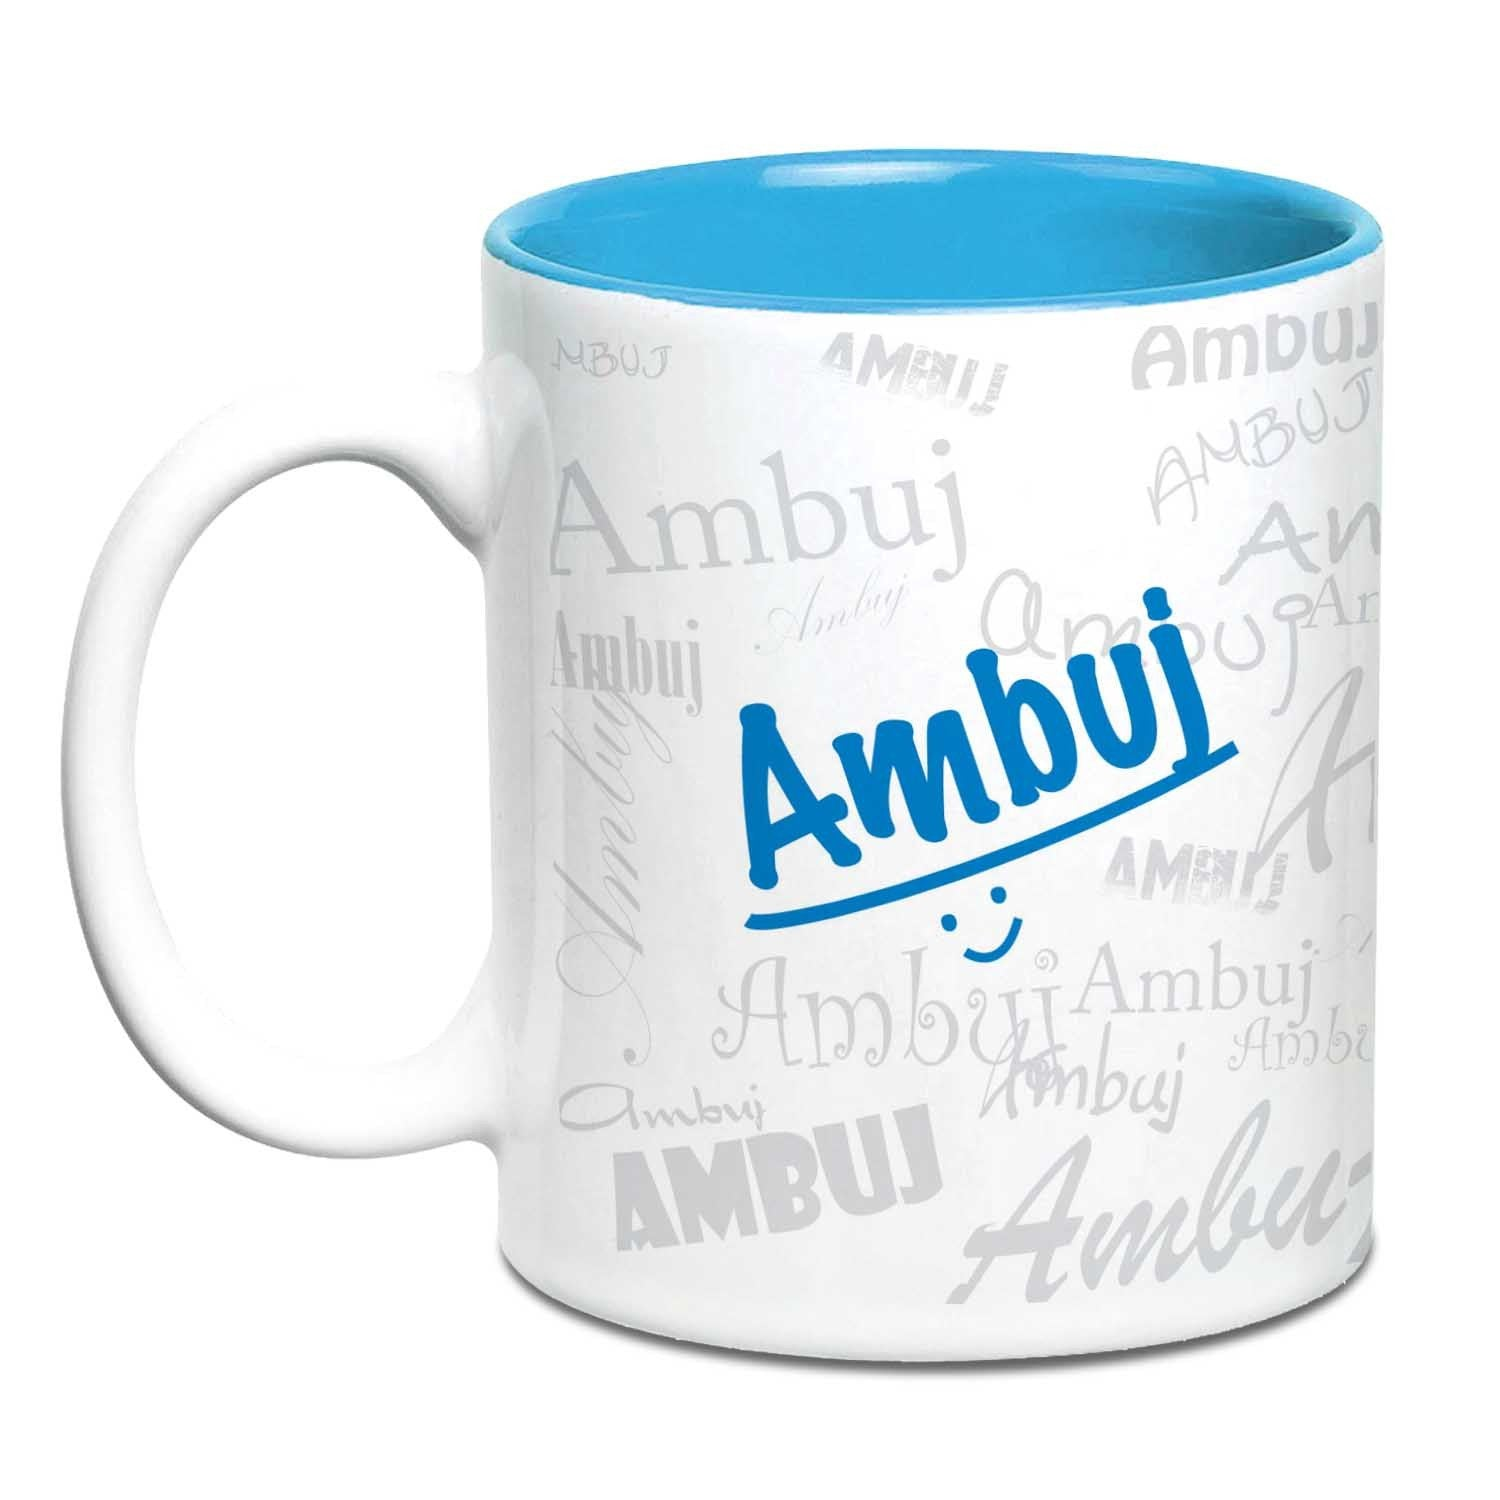 Me Graffiti Mug - Ambuj